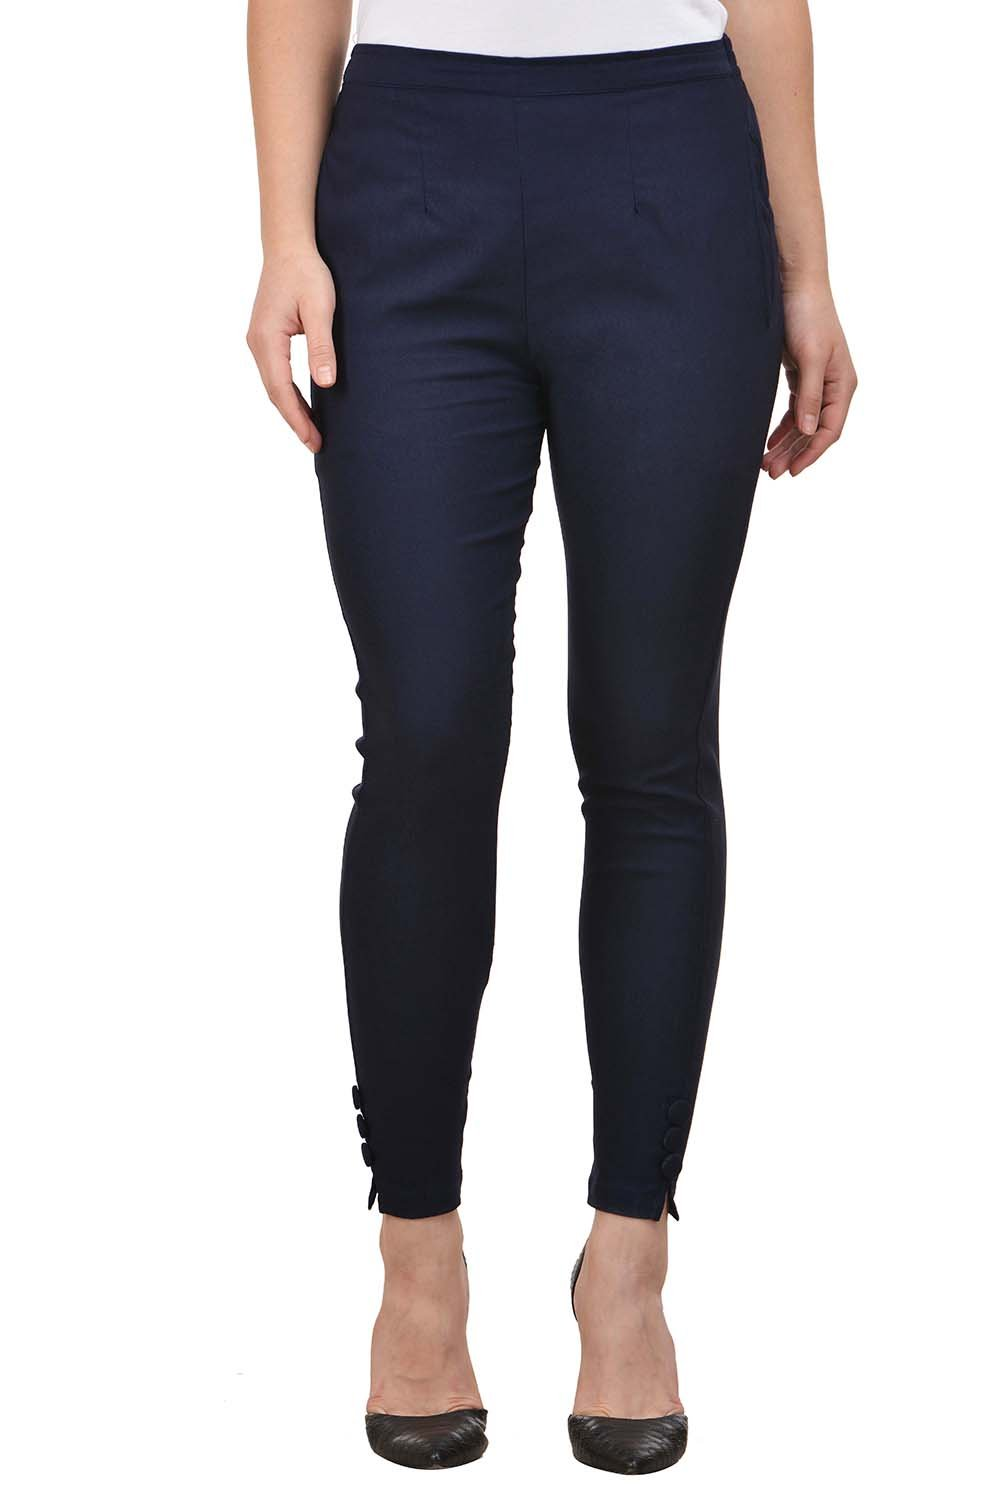 Castle Navy Blue Blue Solid Cotton Lycra Pencil Pant